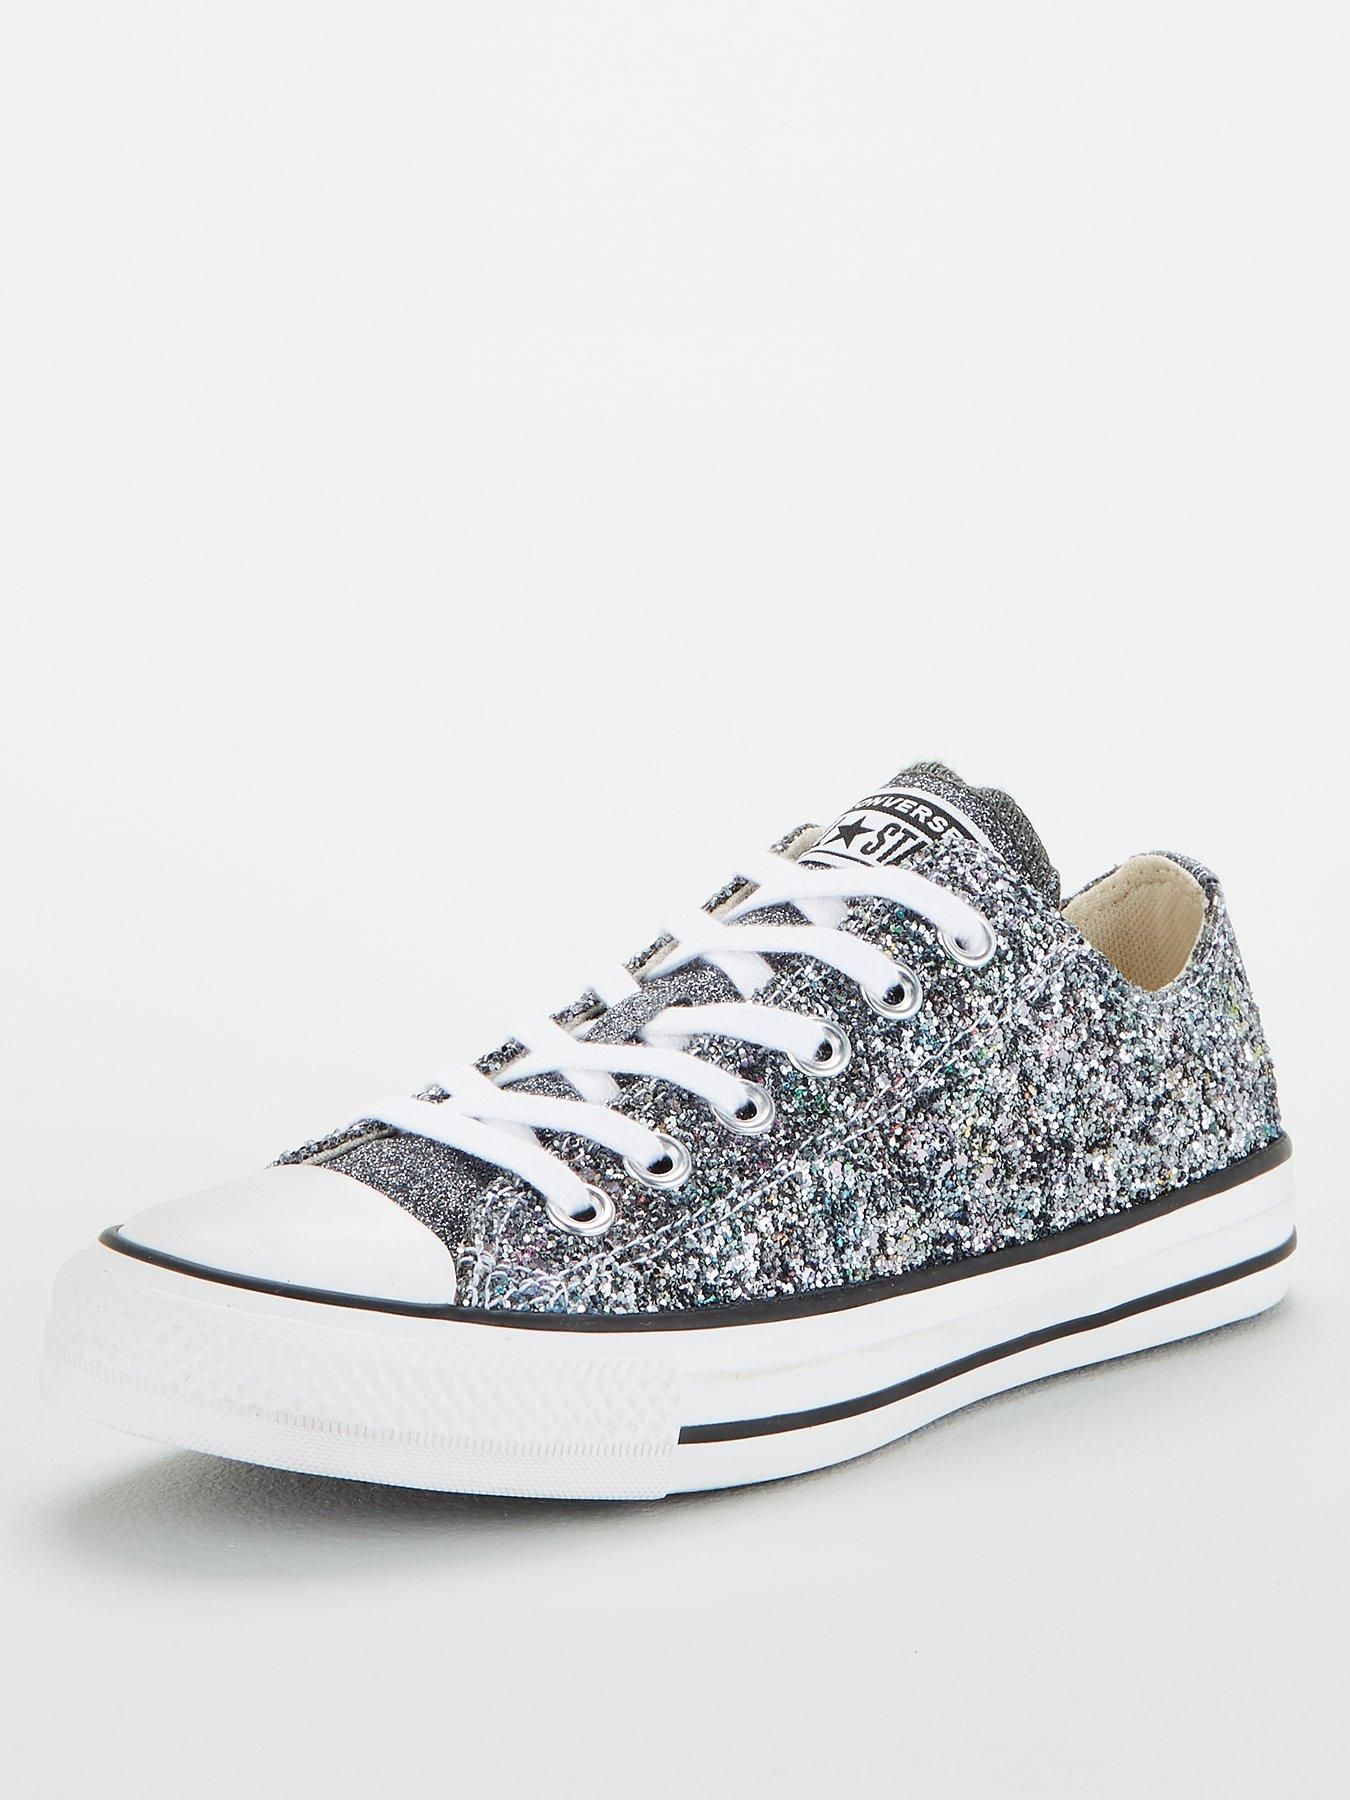 Galaxy Dust Chuck Taylor All Star Low Top SilverWhite in